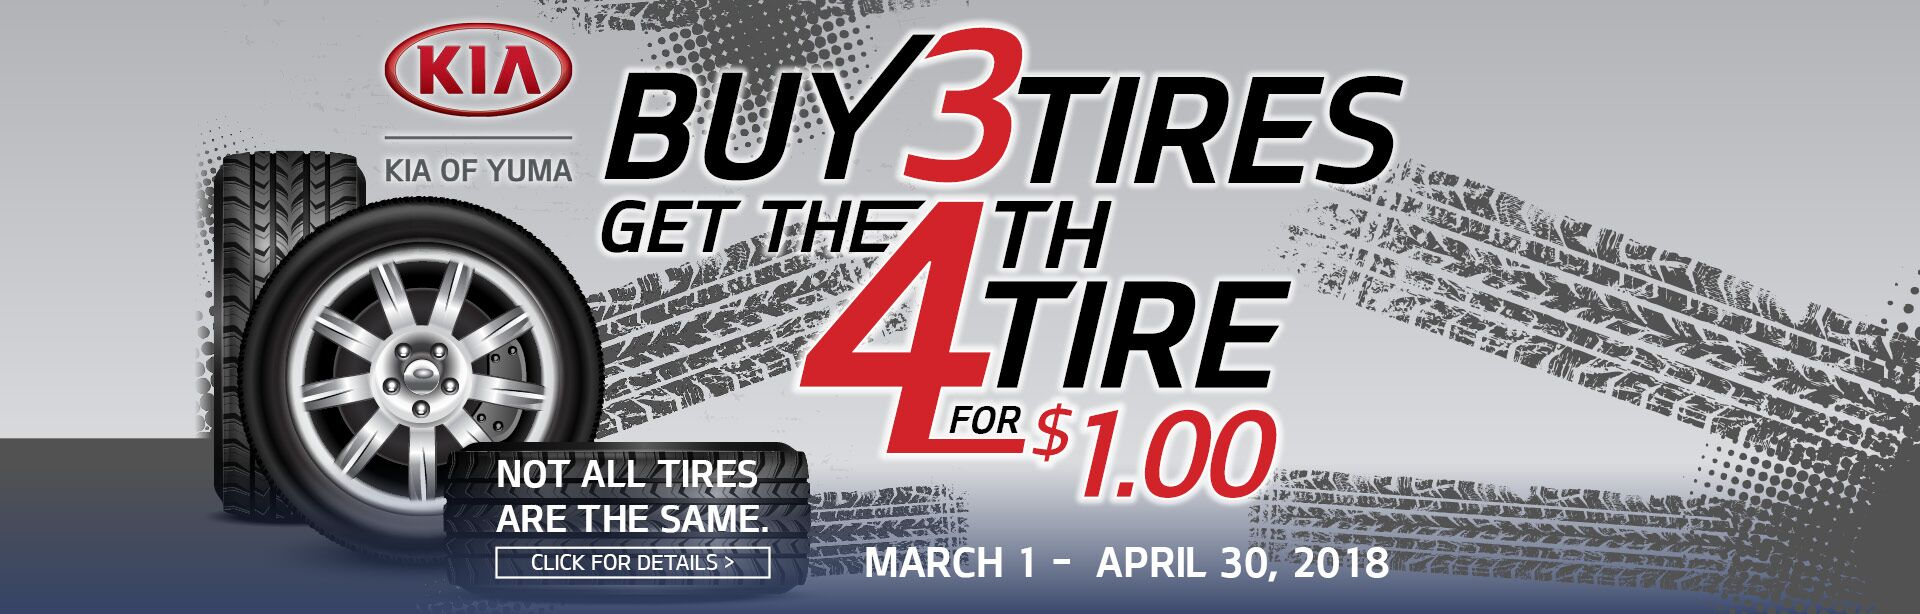 Buy 3 Tires get the 4th Tire for $1.00!